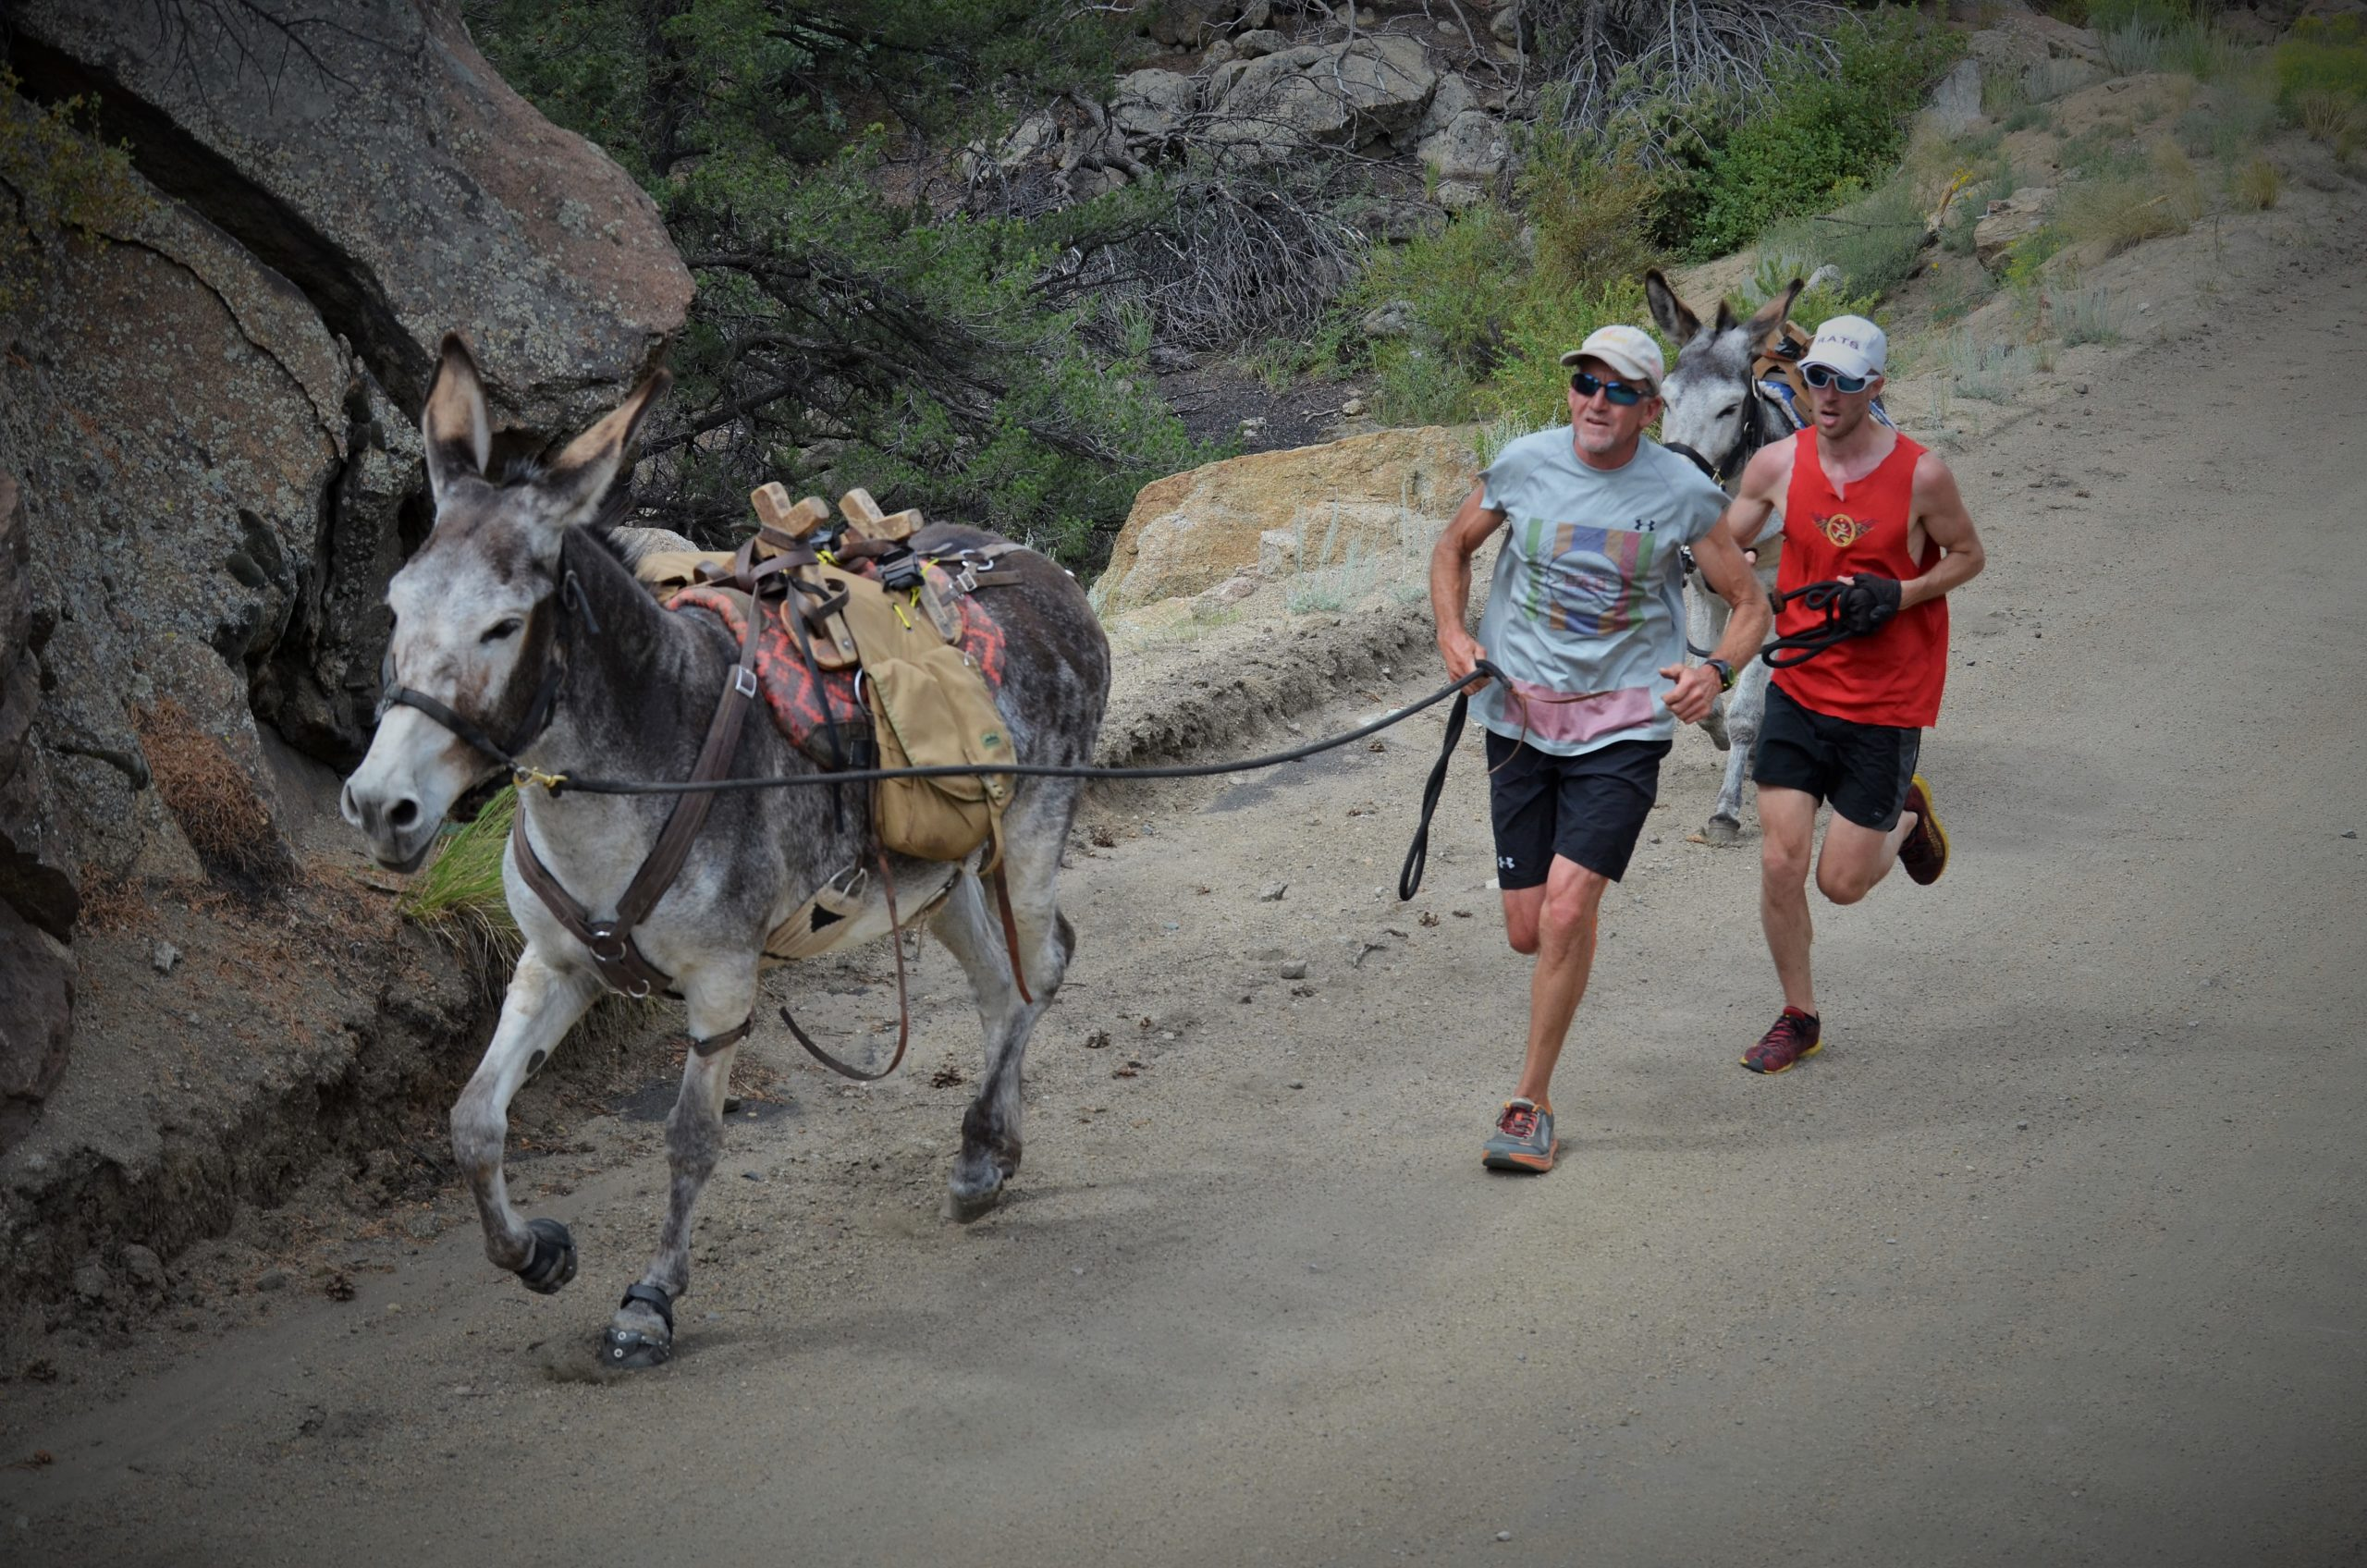 Hal Walter proving that an old burro racer can still beat elite marathoners.